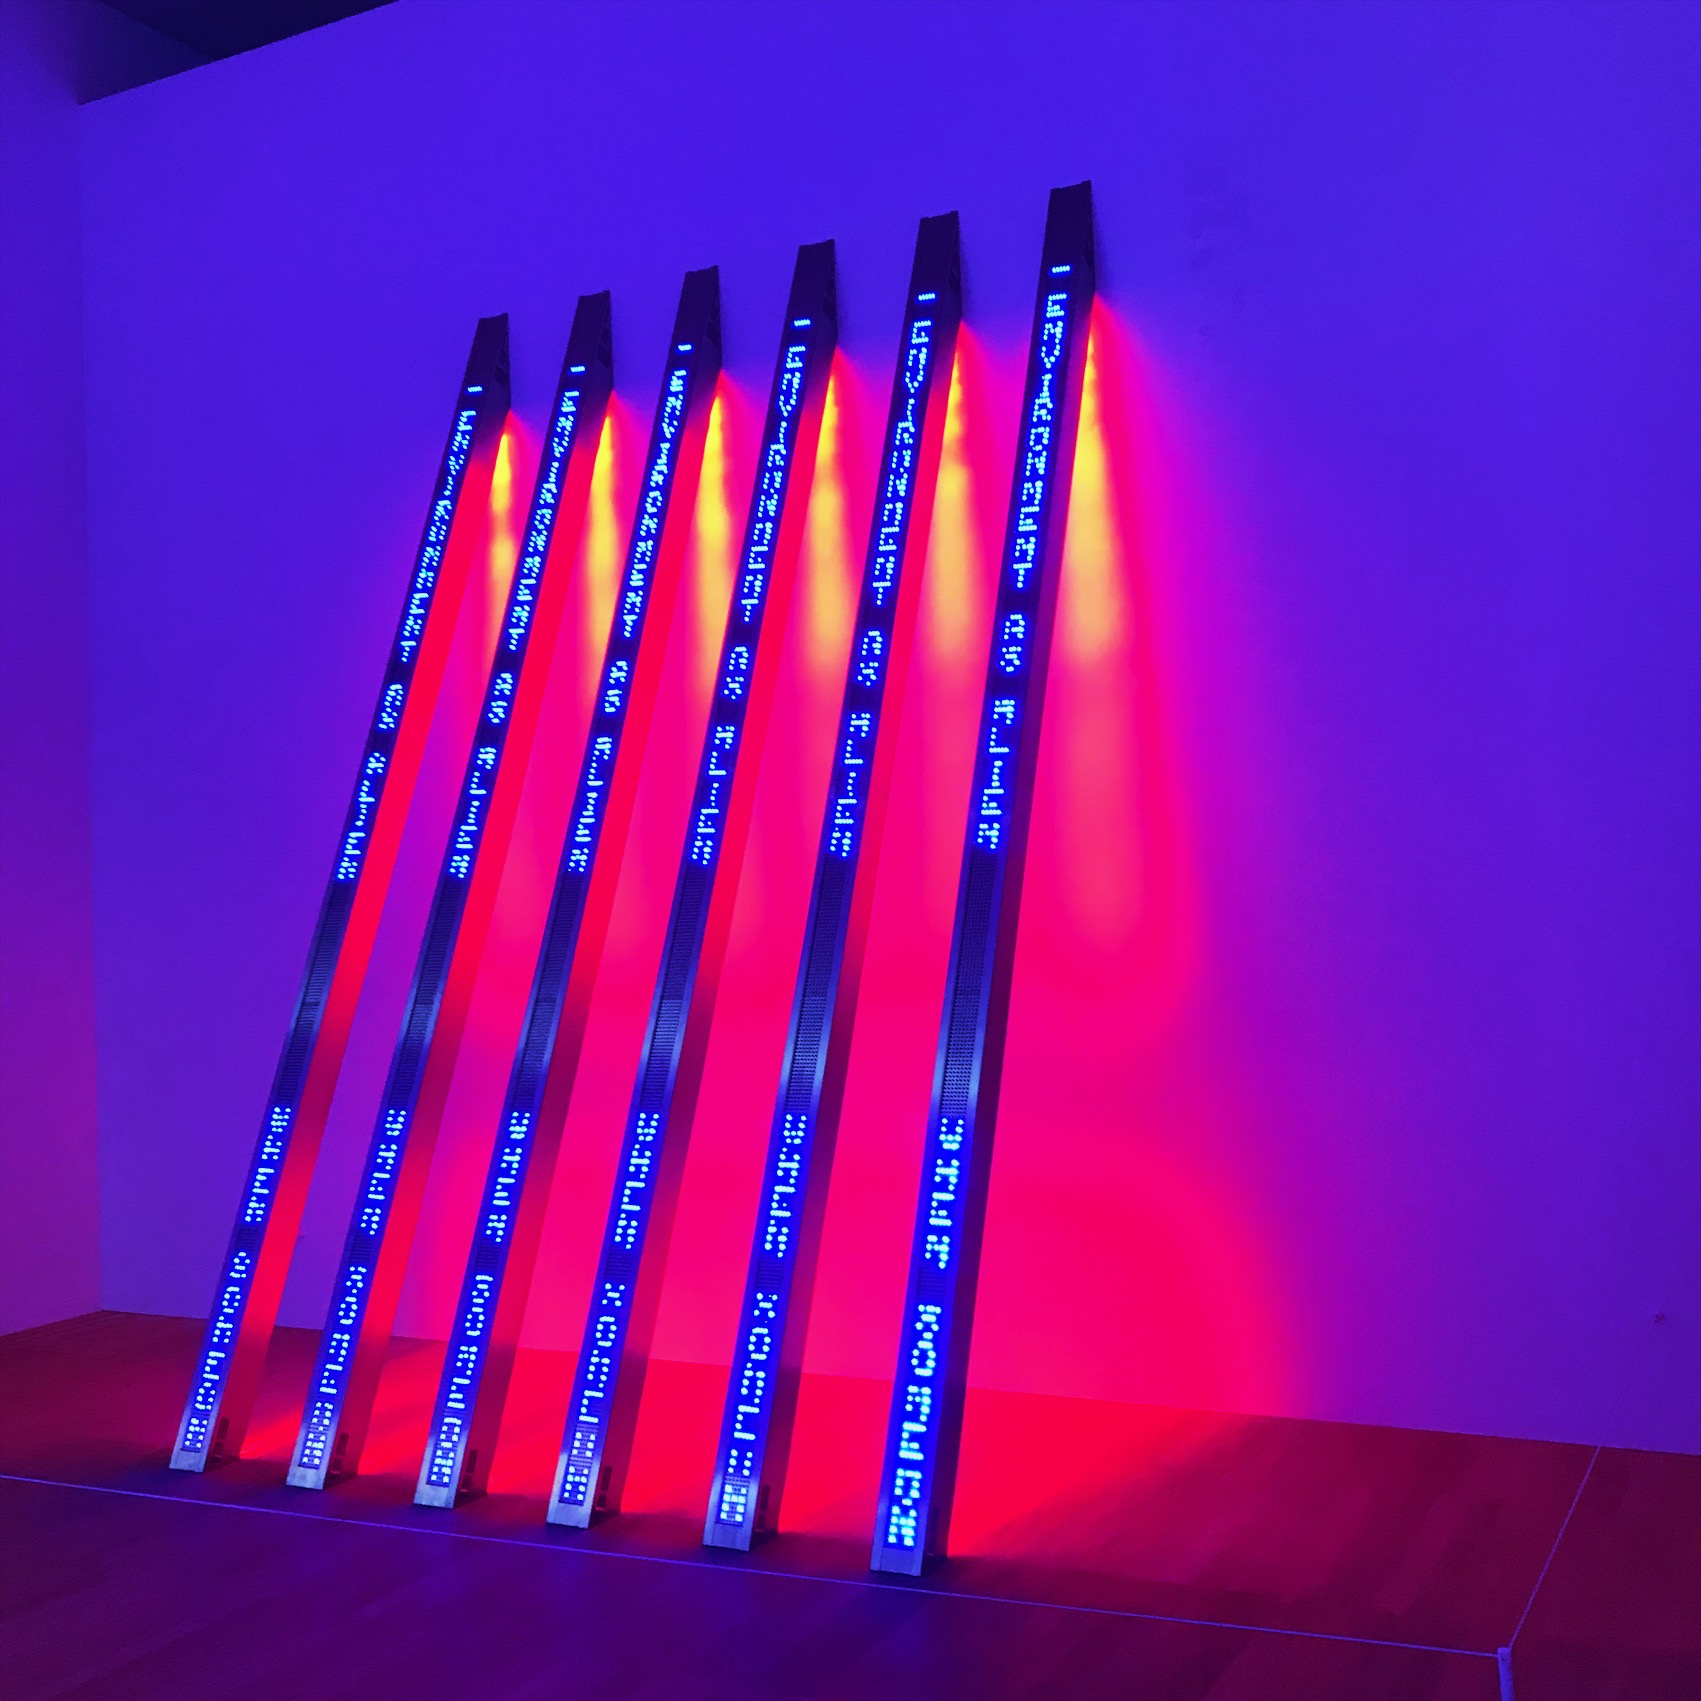 jenny holzer, leds art, neon art, light bars, truisms, laments, neo contemporary, new york artist,